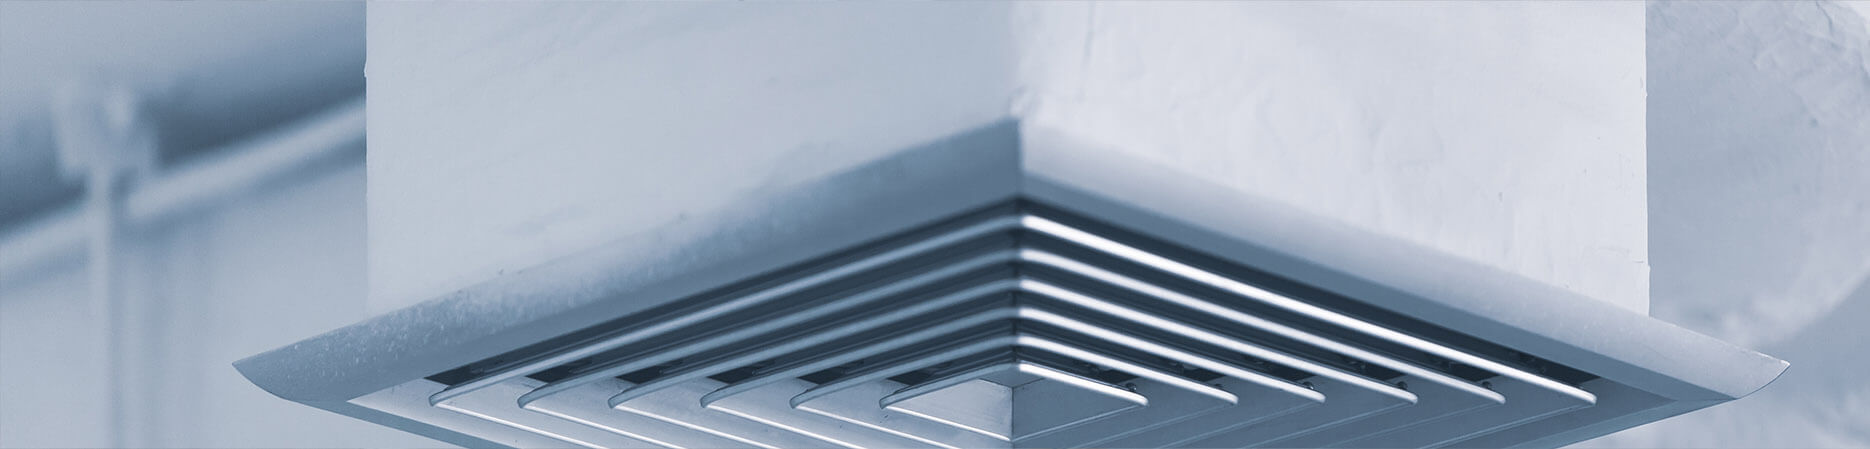 Air Conditioning Vent